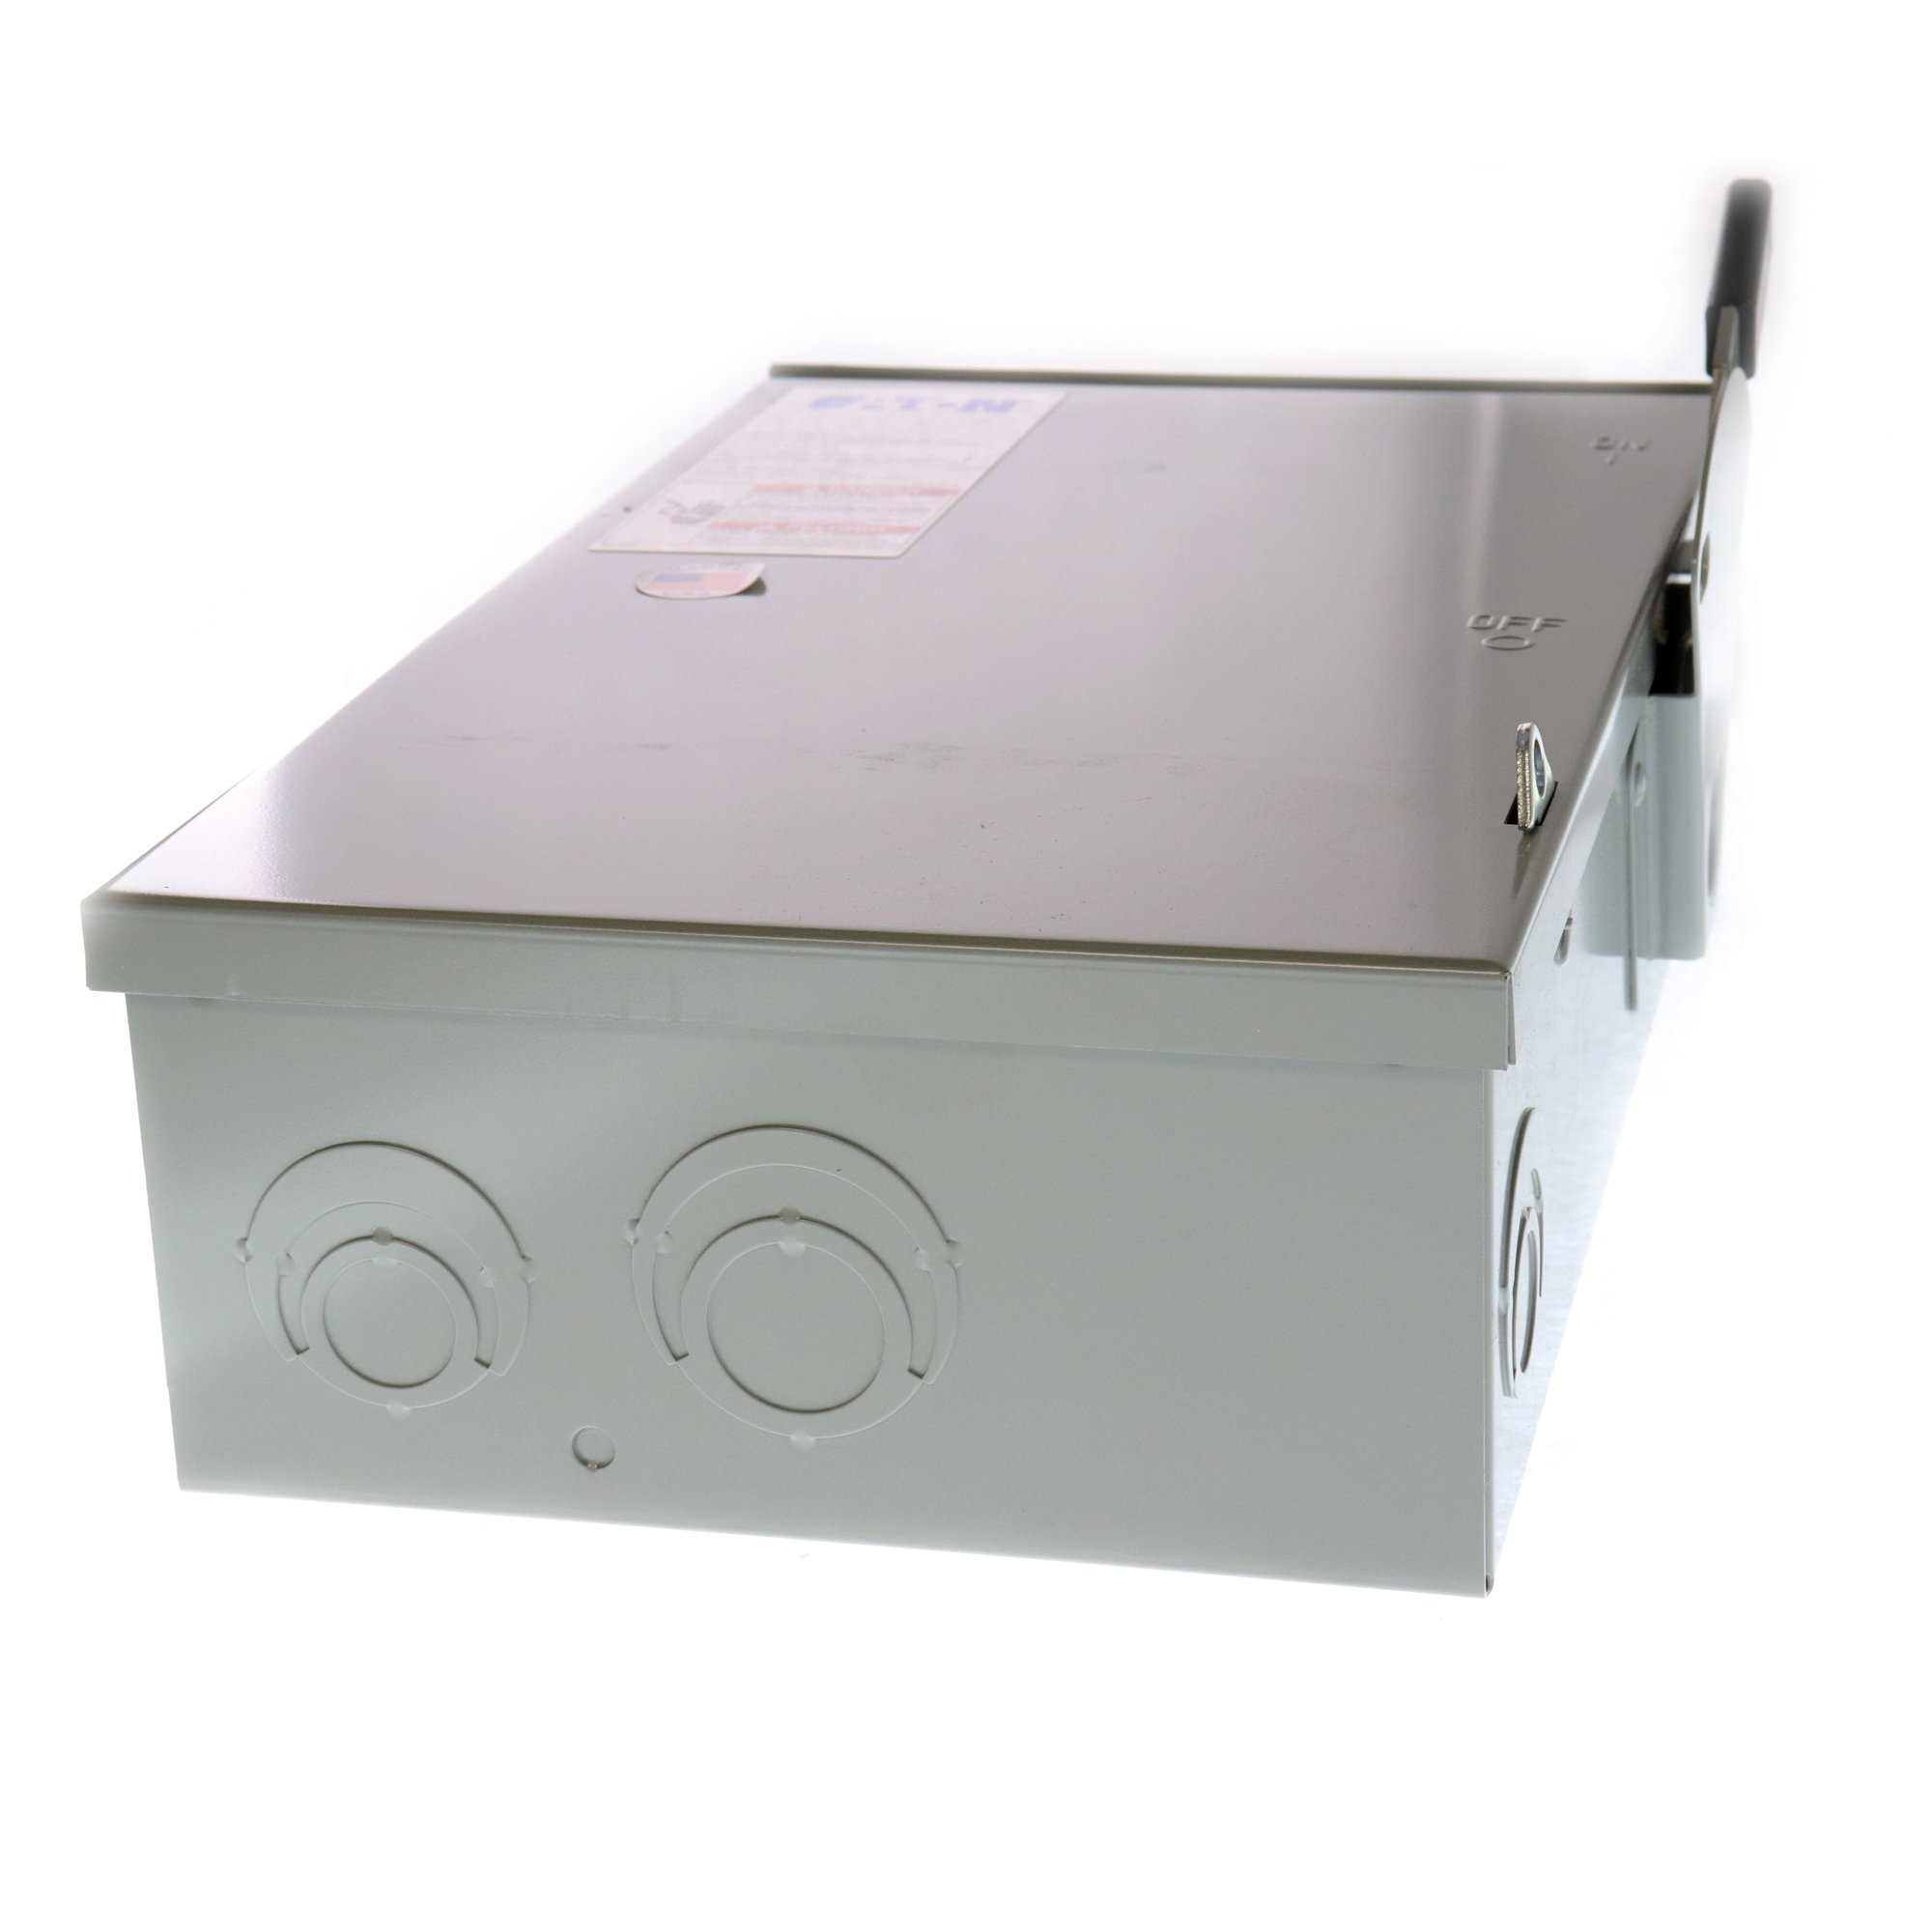 Eaton DG322NRB 4 Wire 3 Pole Fusible B Series General-Duty Safety Switch 240 Volt AC 60 Amp NEMA 3R by Eaton (Image #3)